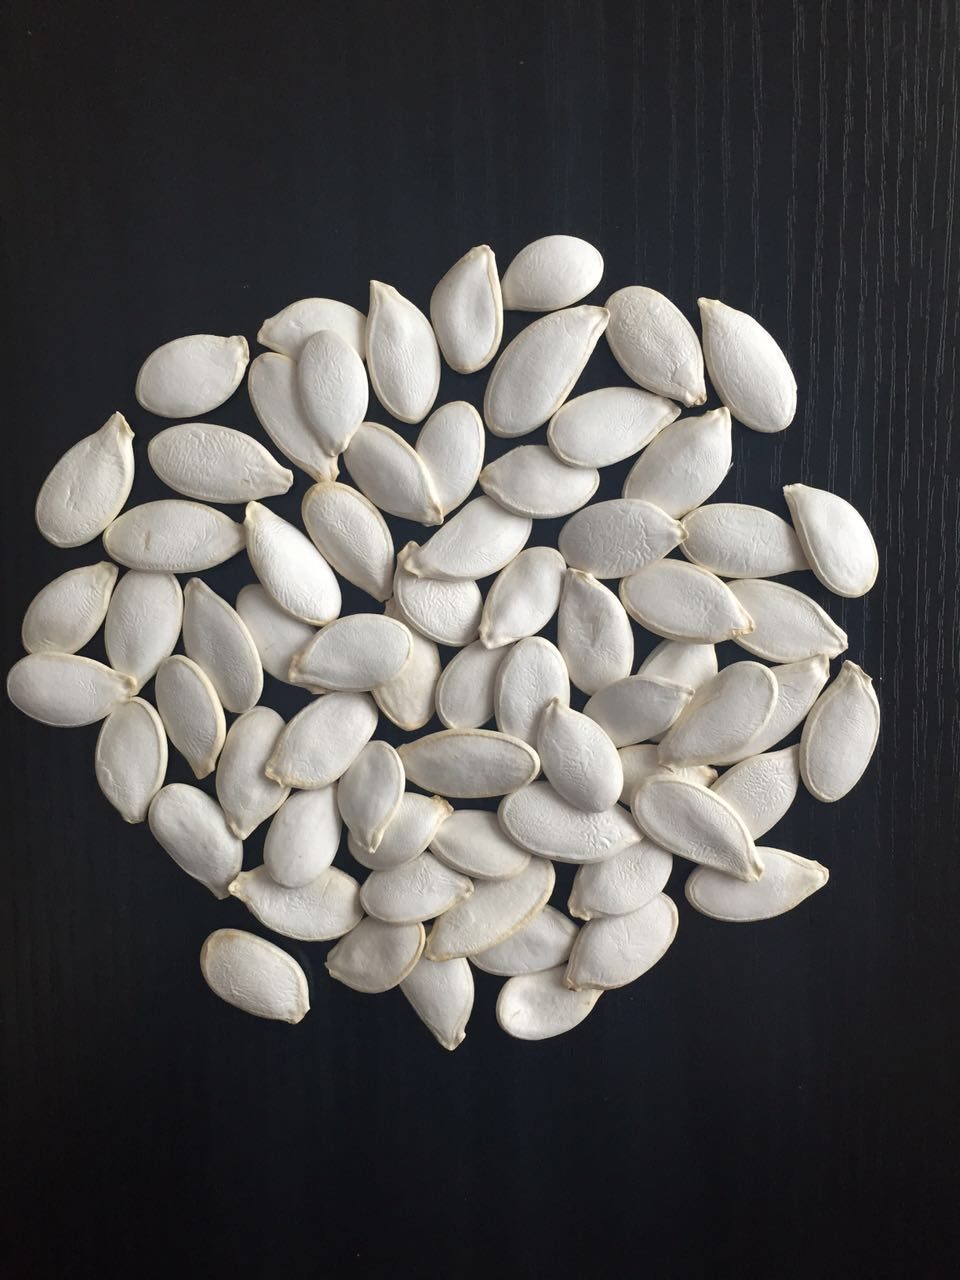 Chinese hotsale snow white pumpkin seeds 11/13cm